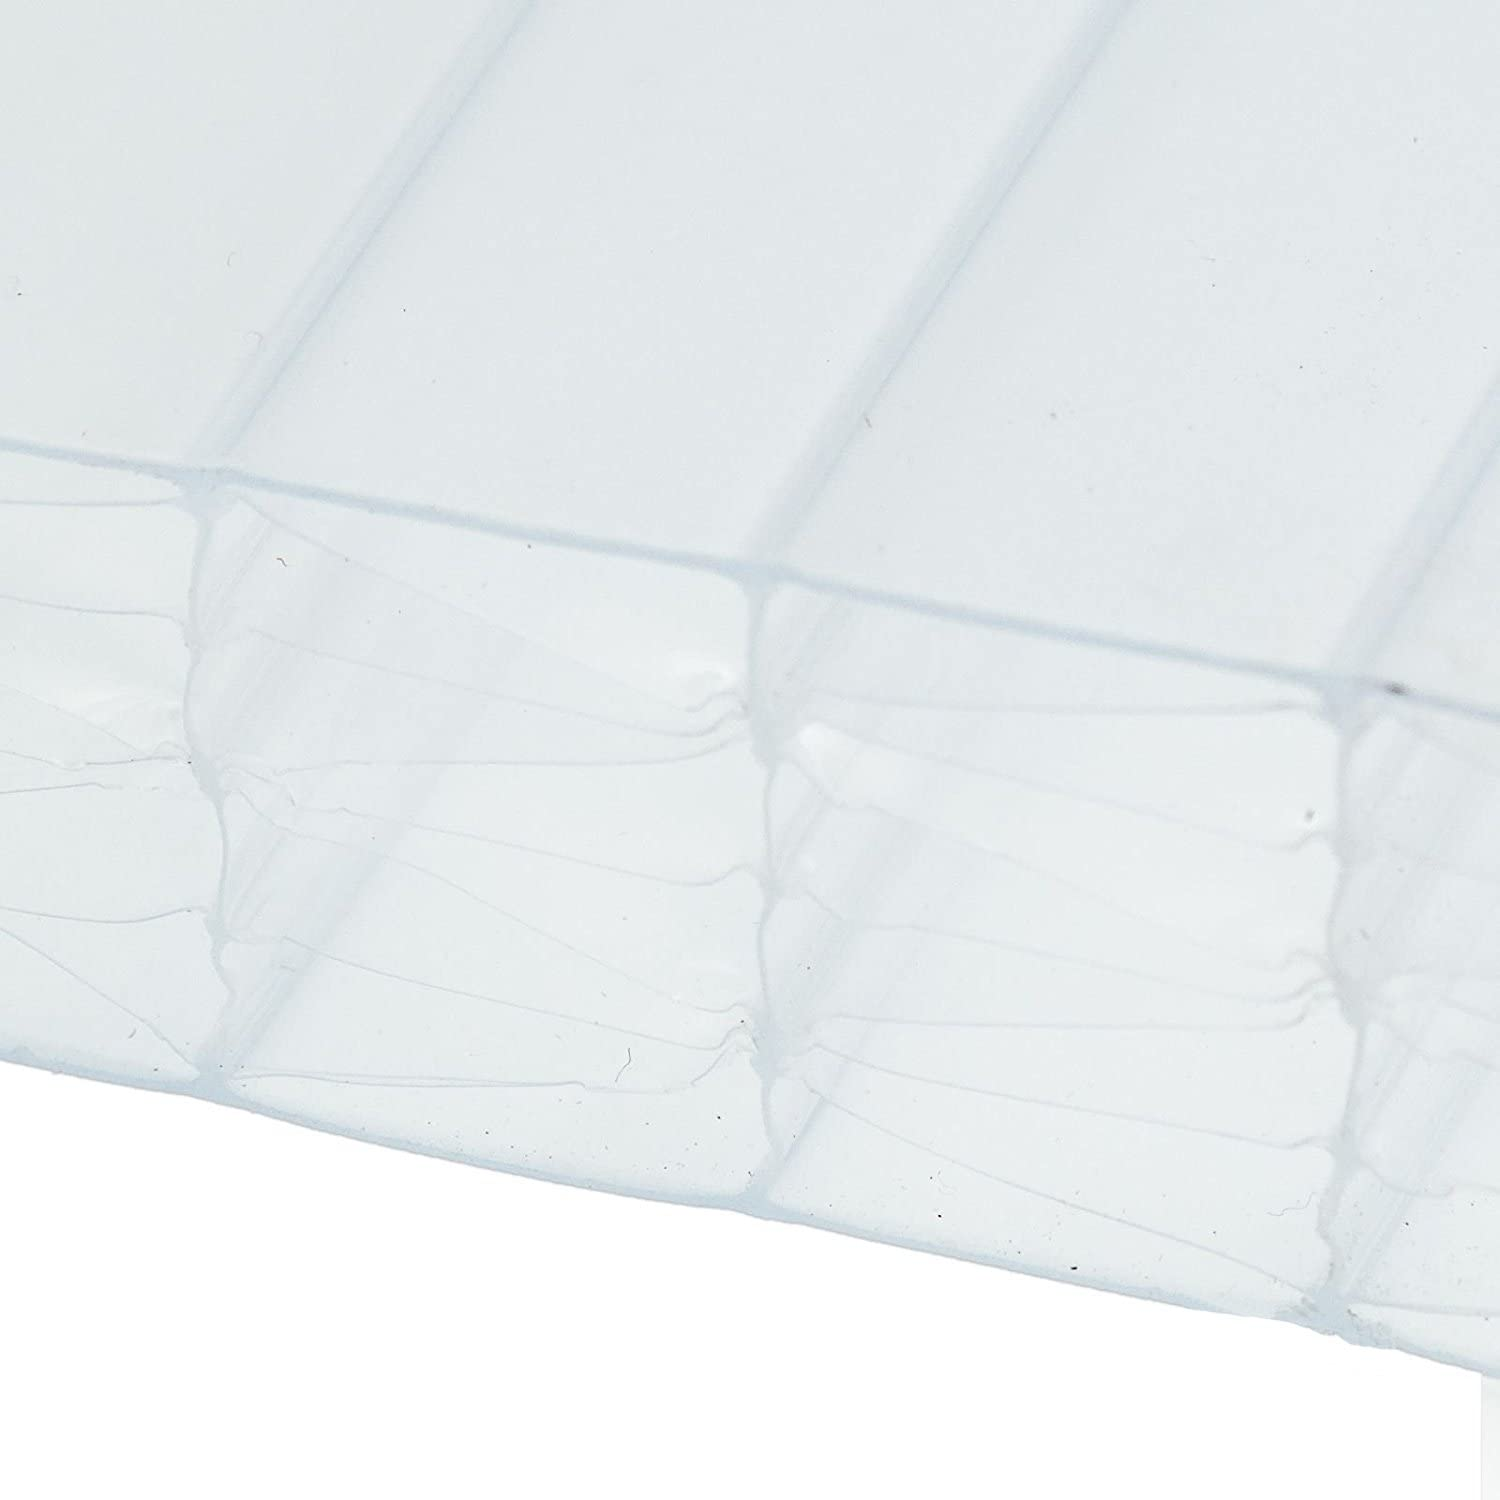 Opal, 1 x 1.5m (Width x Length) 25mm Multiwall Polycarbonate Sheets Poly Plastic Roof Panel for Leanto Canopy Conservatory